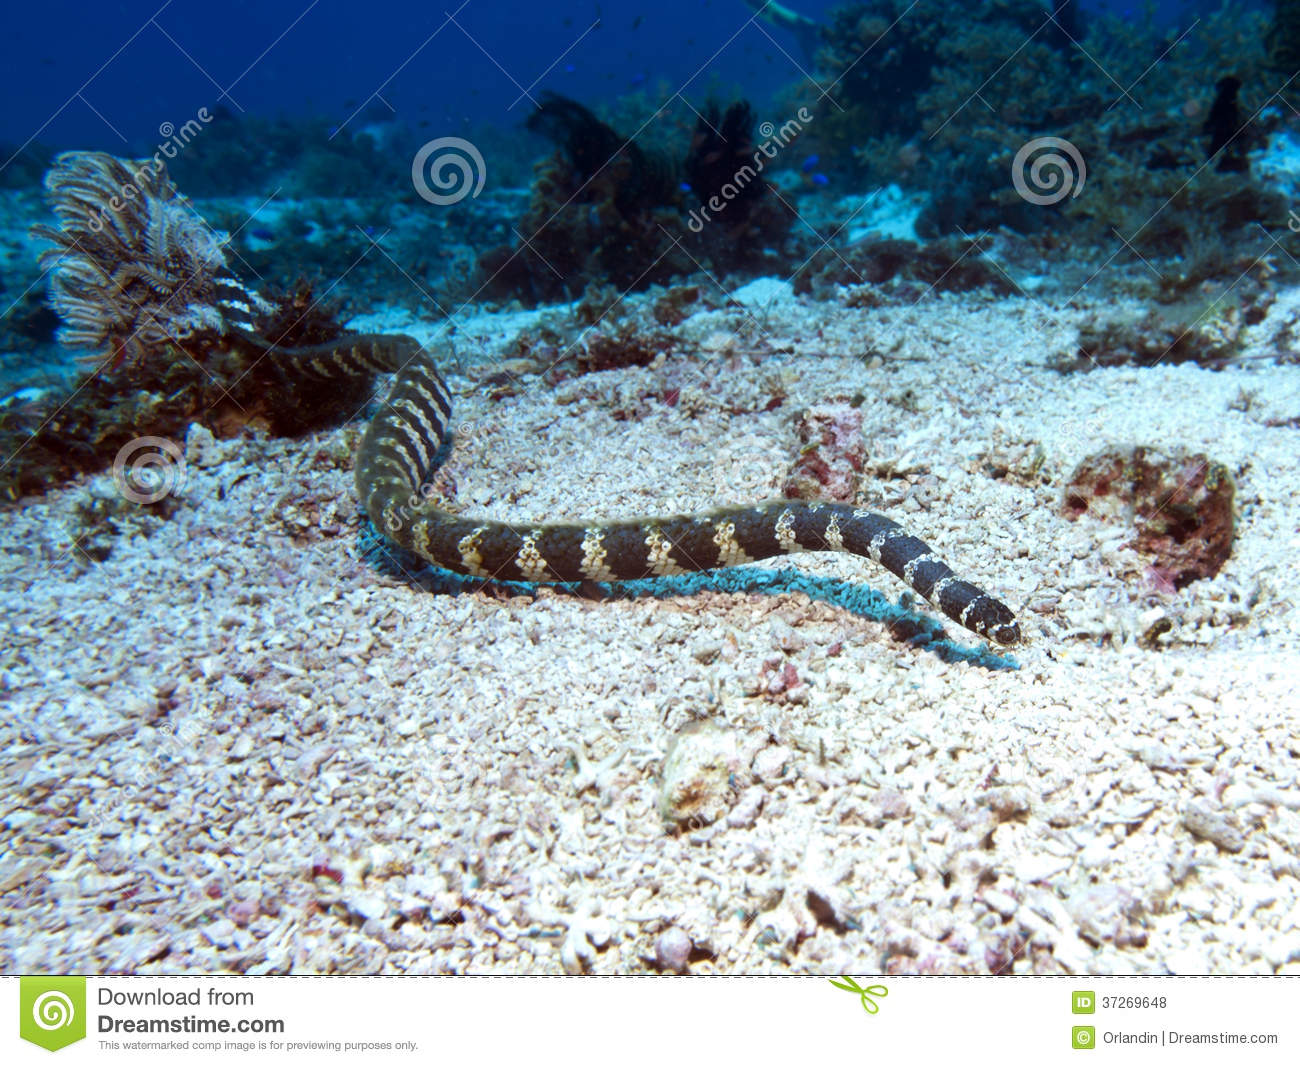 Krait congregado del mar